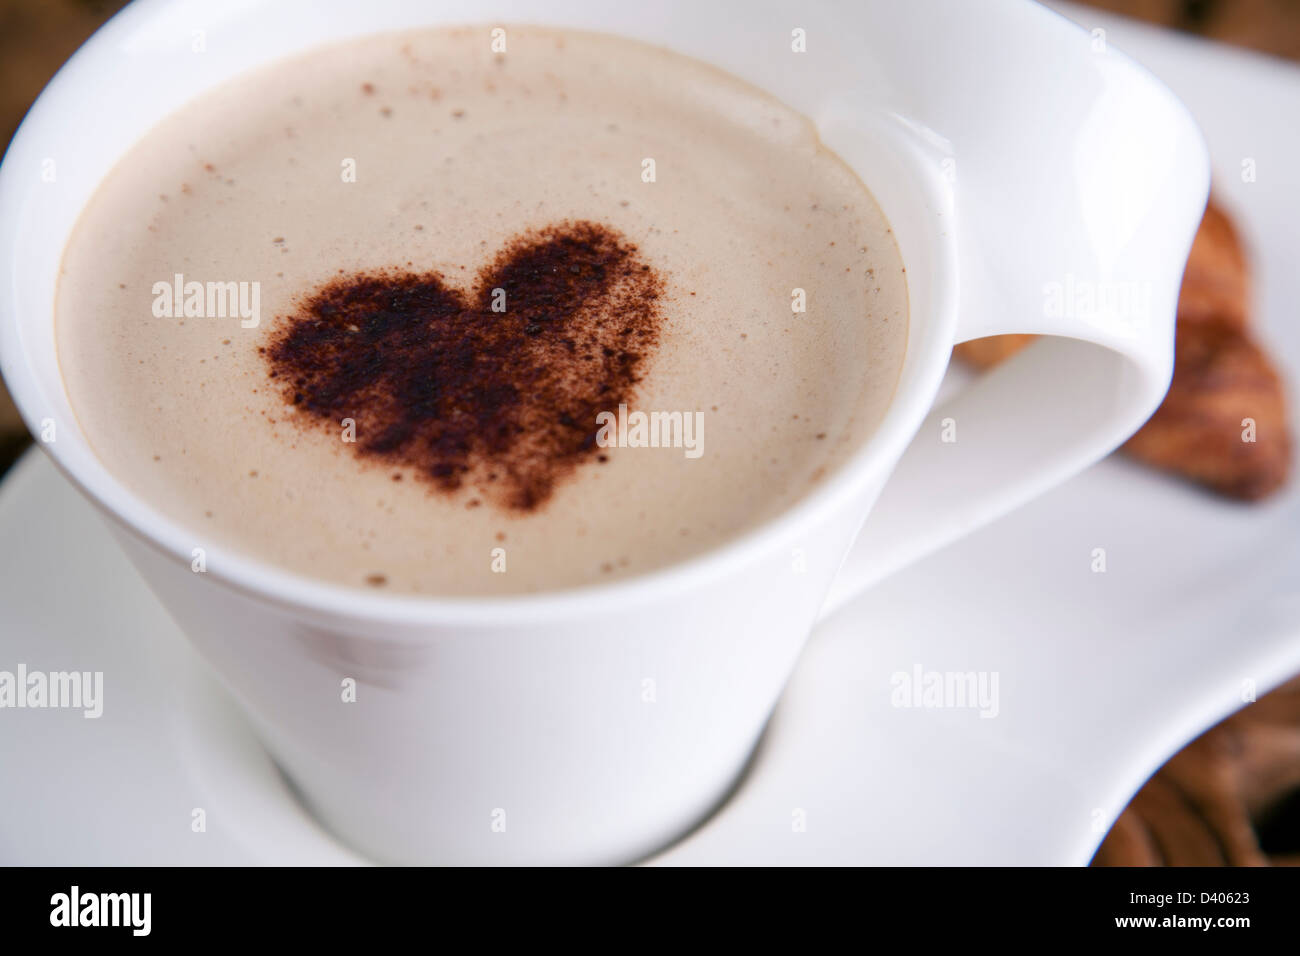 dd9ec93aa88 A fancy coffee latte with a love heart on top in a clean bright white cup